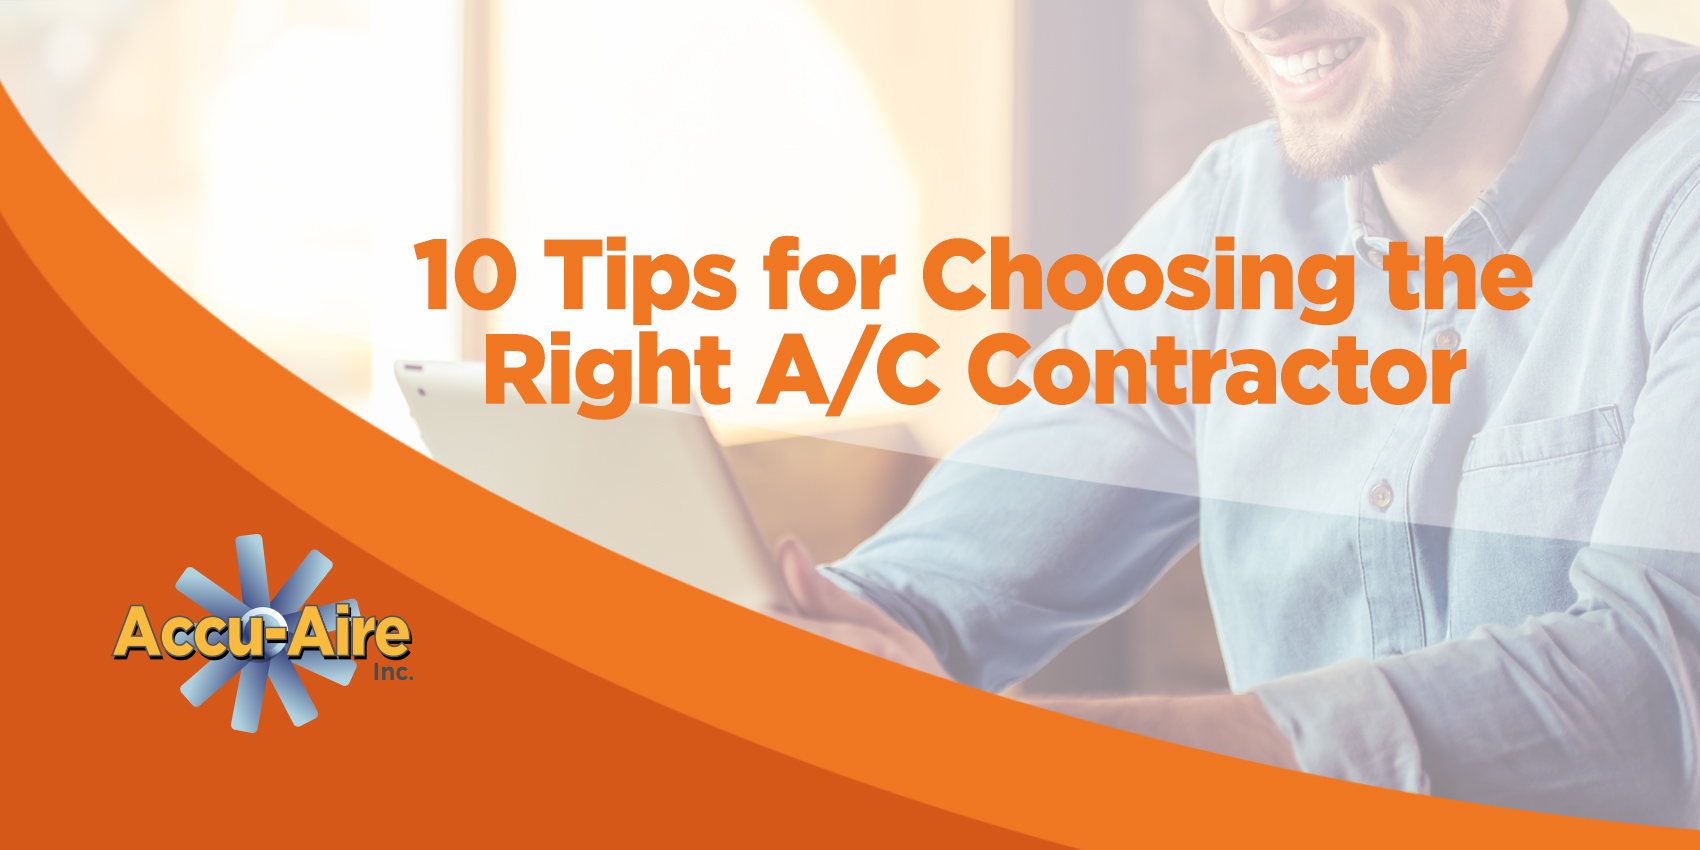 You may not know but your thermostats are surprisingly delicate and vulnerable devices that may fail any time. When they do, you'll have a difficult time managing your indoor temperature.